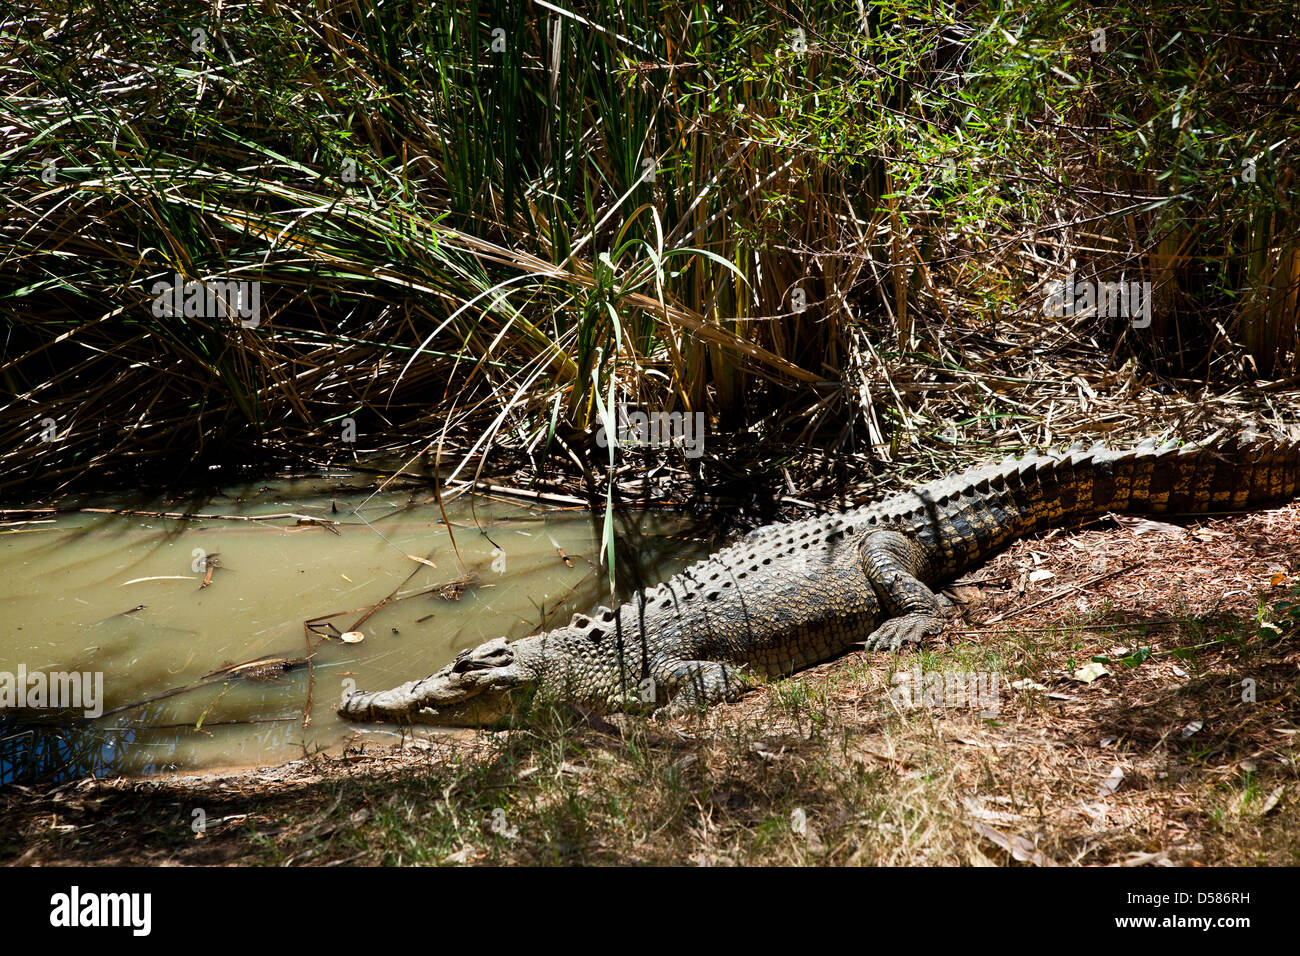 Australia, Western Australia, saltwater crocodile at the Wyndham crocodile farm - Stock Image